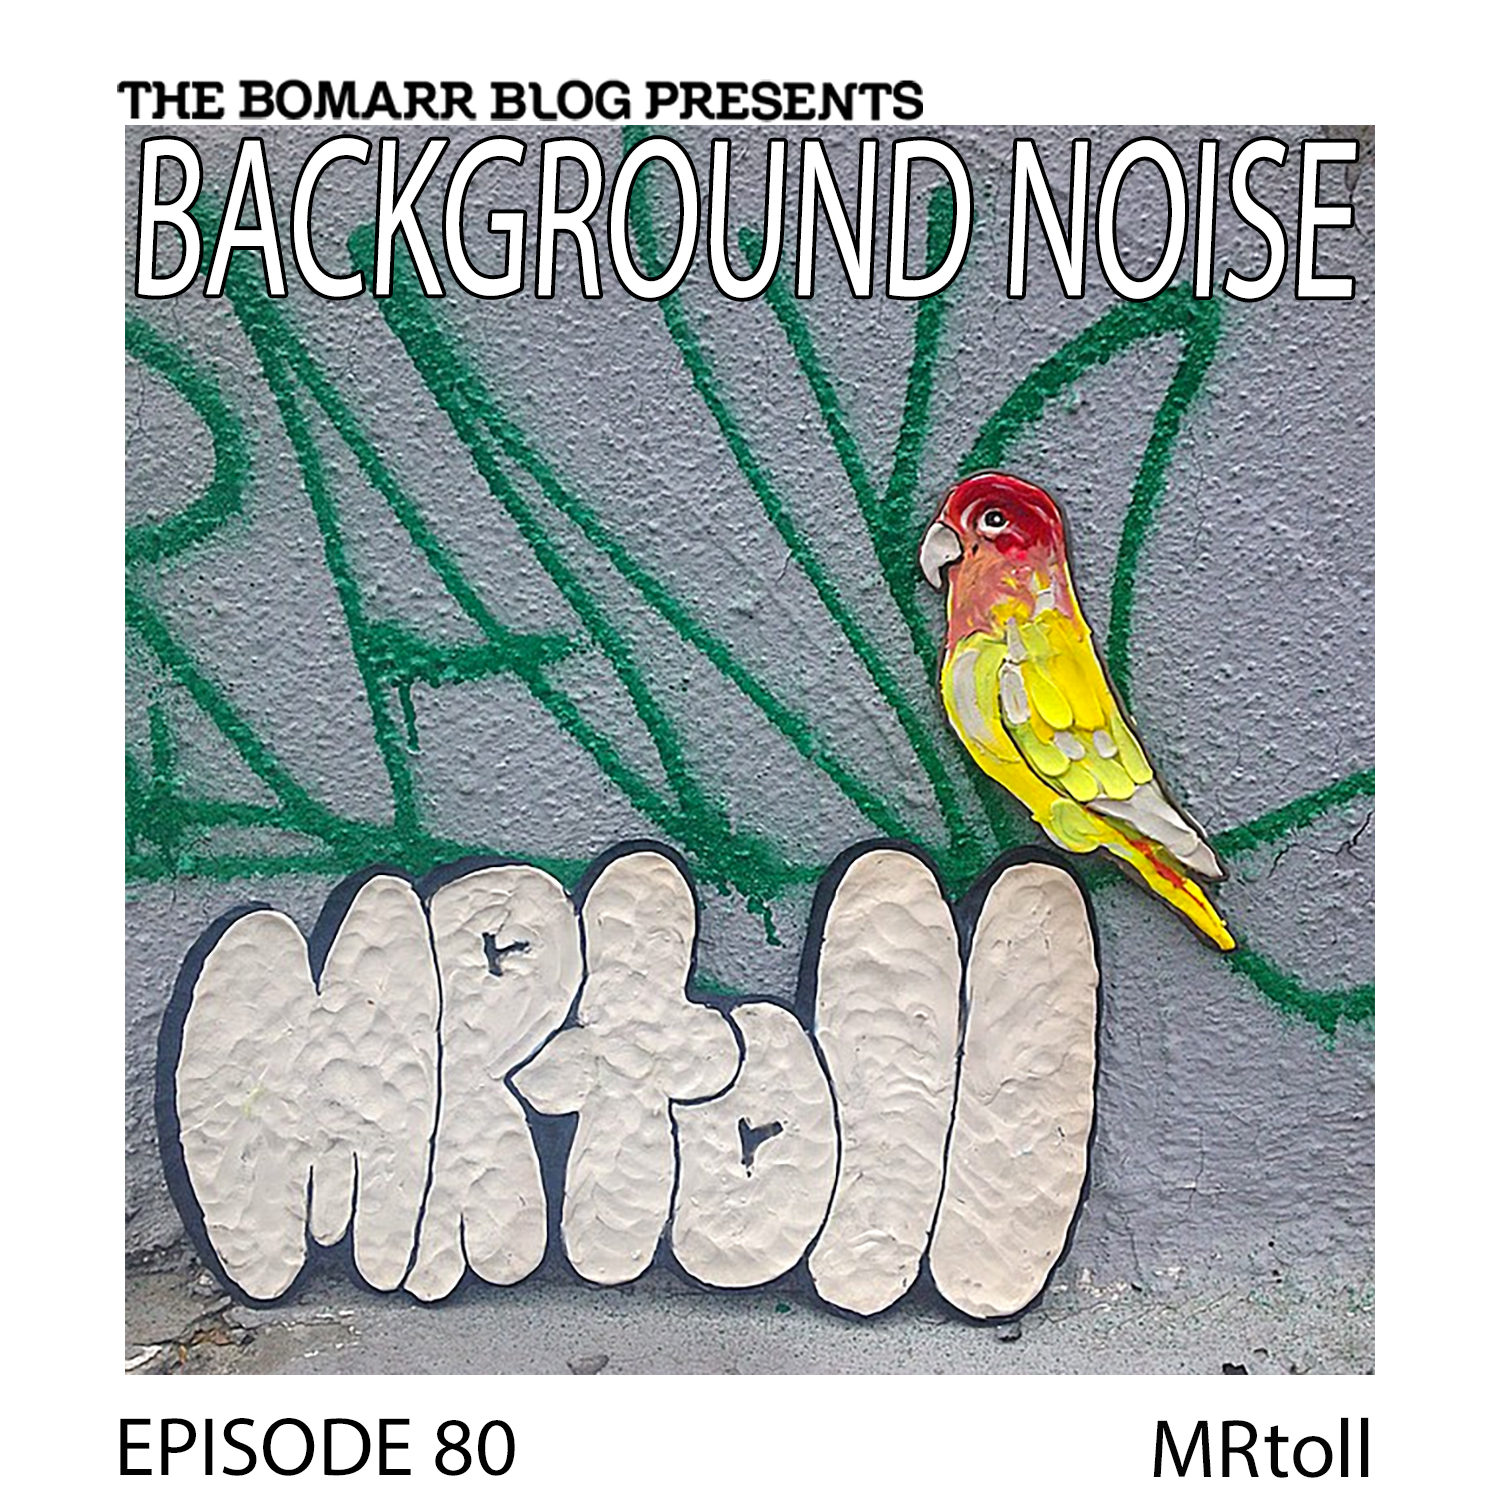 THE BACKGROUND NOISE PODCAST SERIES FOCUSES ON THE MUSIC THAT ARTISTS LISTEN TO WHEN THEY WORK, WHAT MUSIC INSPIRES THEM, OR JUST MUSIC THEY LIKE. THIS WEEK, IN EPISODE 80, THE FOCUS IS ON MR. TOLL